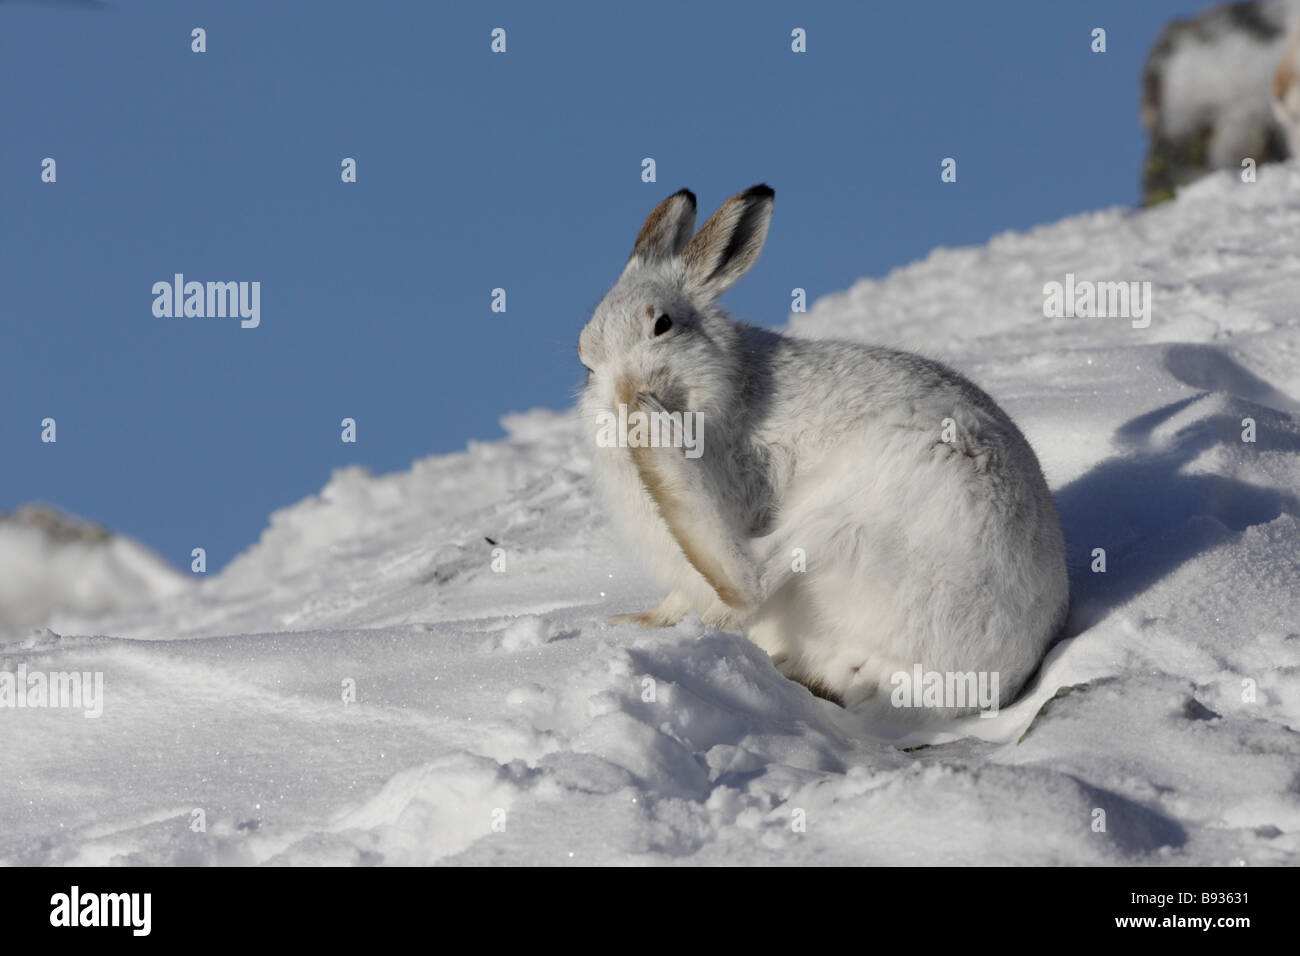 Mountain Hare Lepus timidus in winter cleaning foot - Stock Image